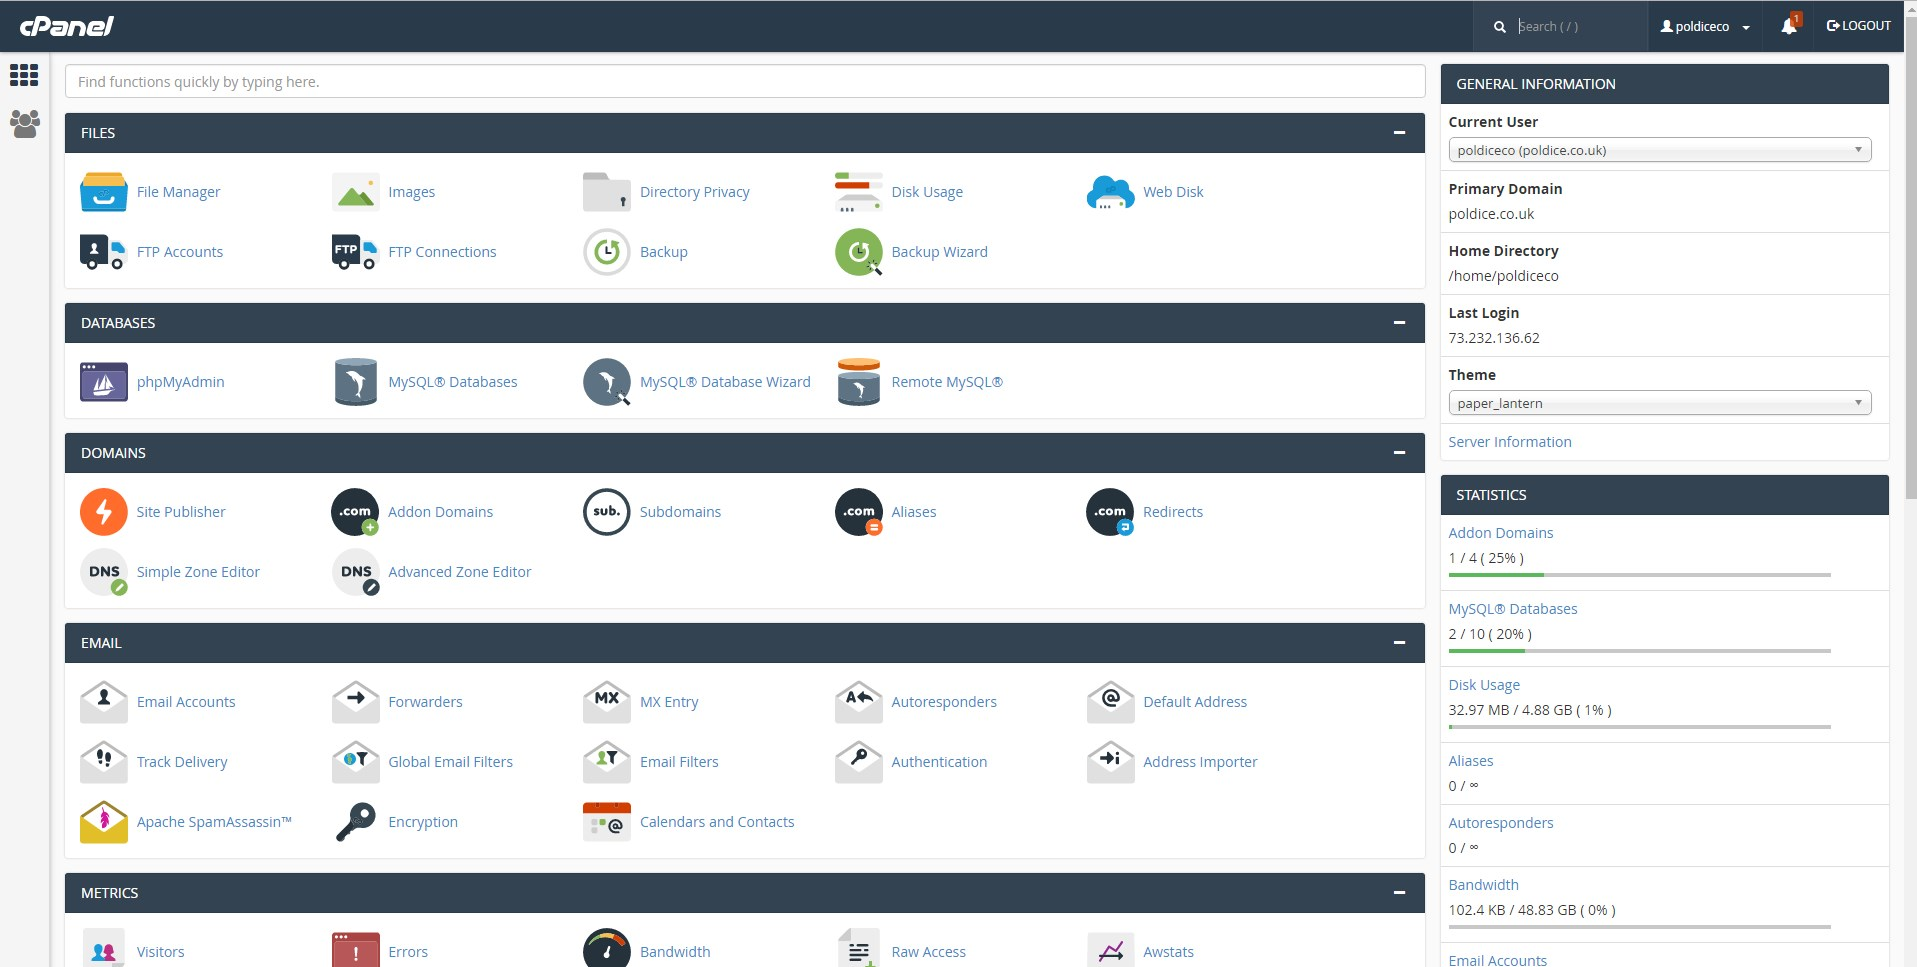 Installing WordPress using cPanel - Getting Started - cloudabove